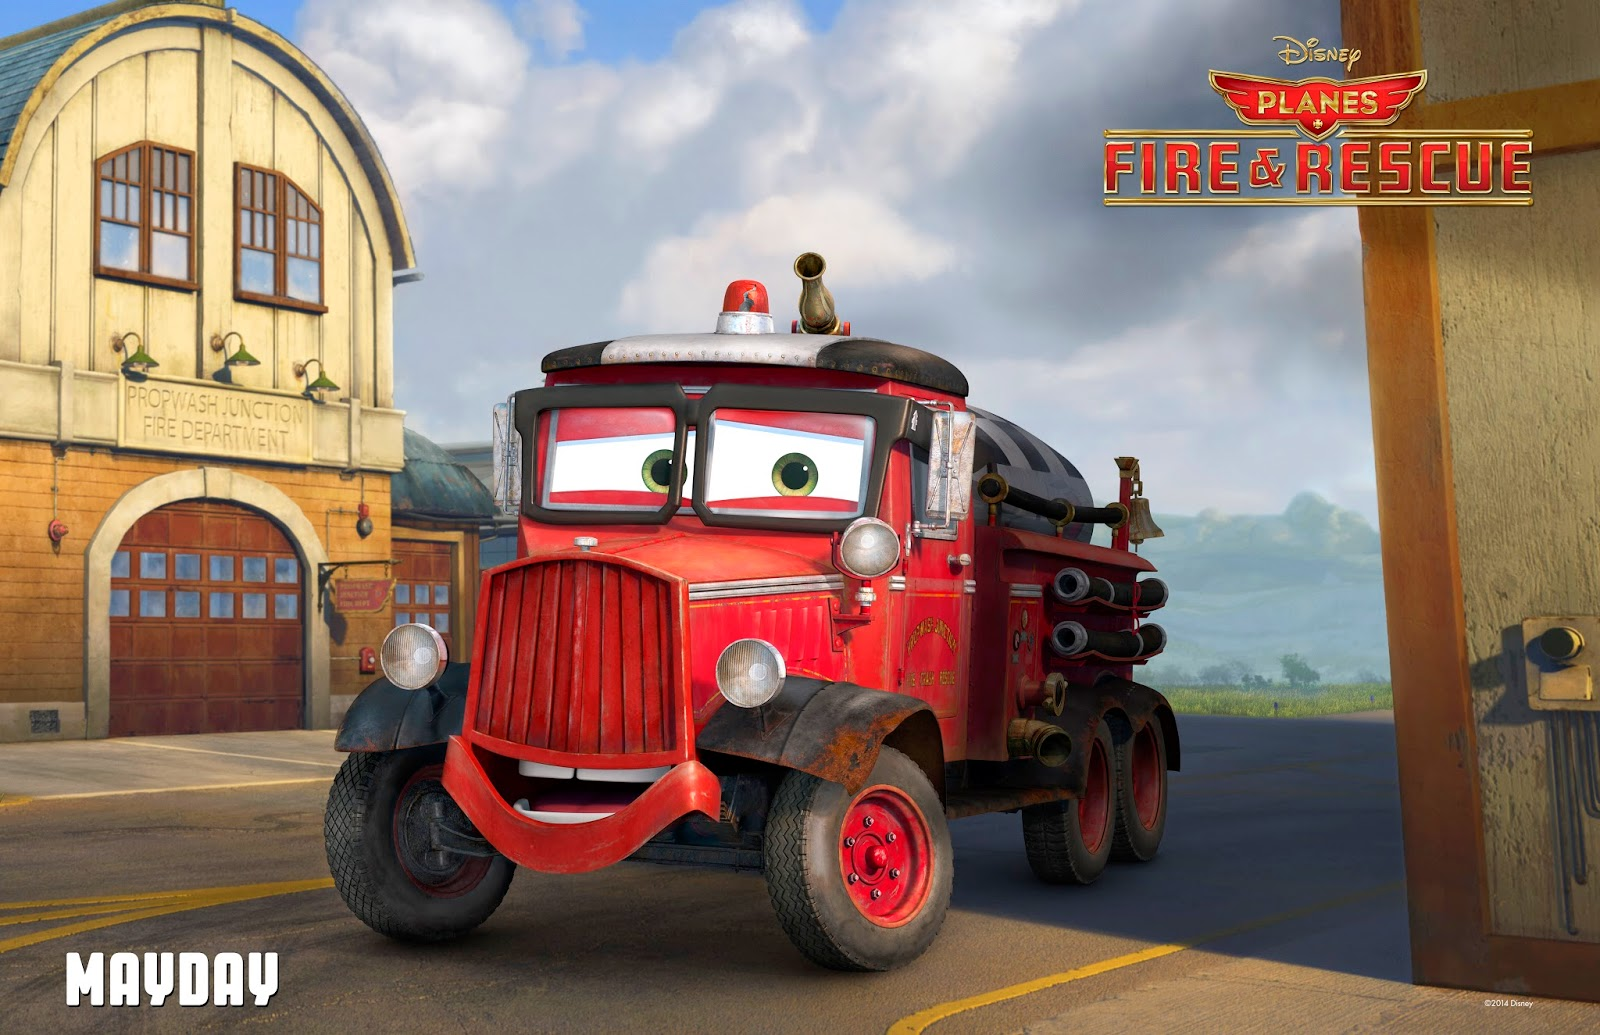 MayDay from Disney's Planes: Fire & Rescue